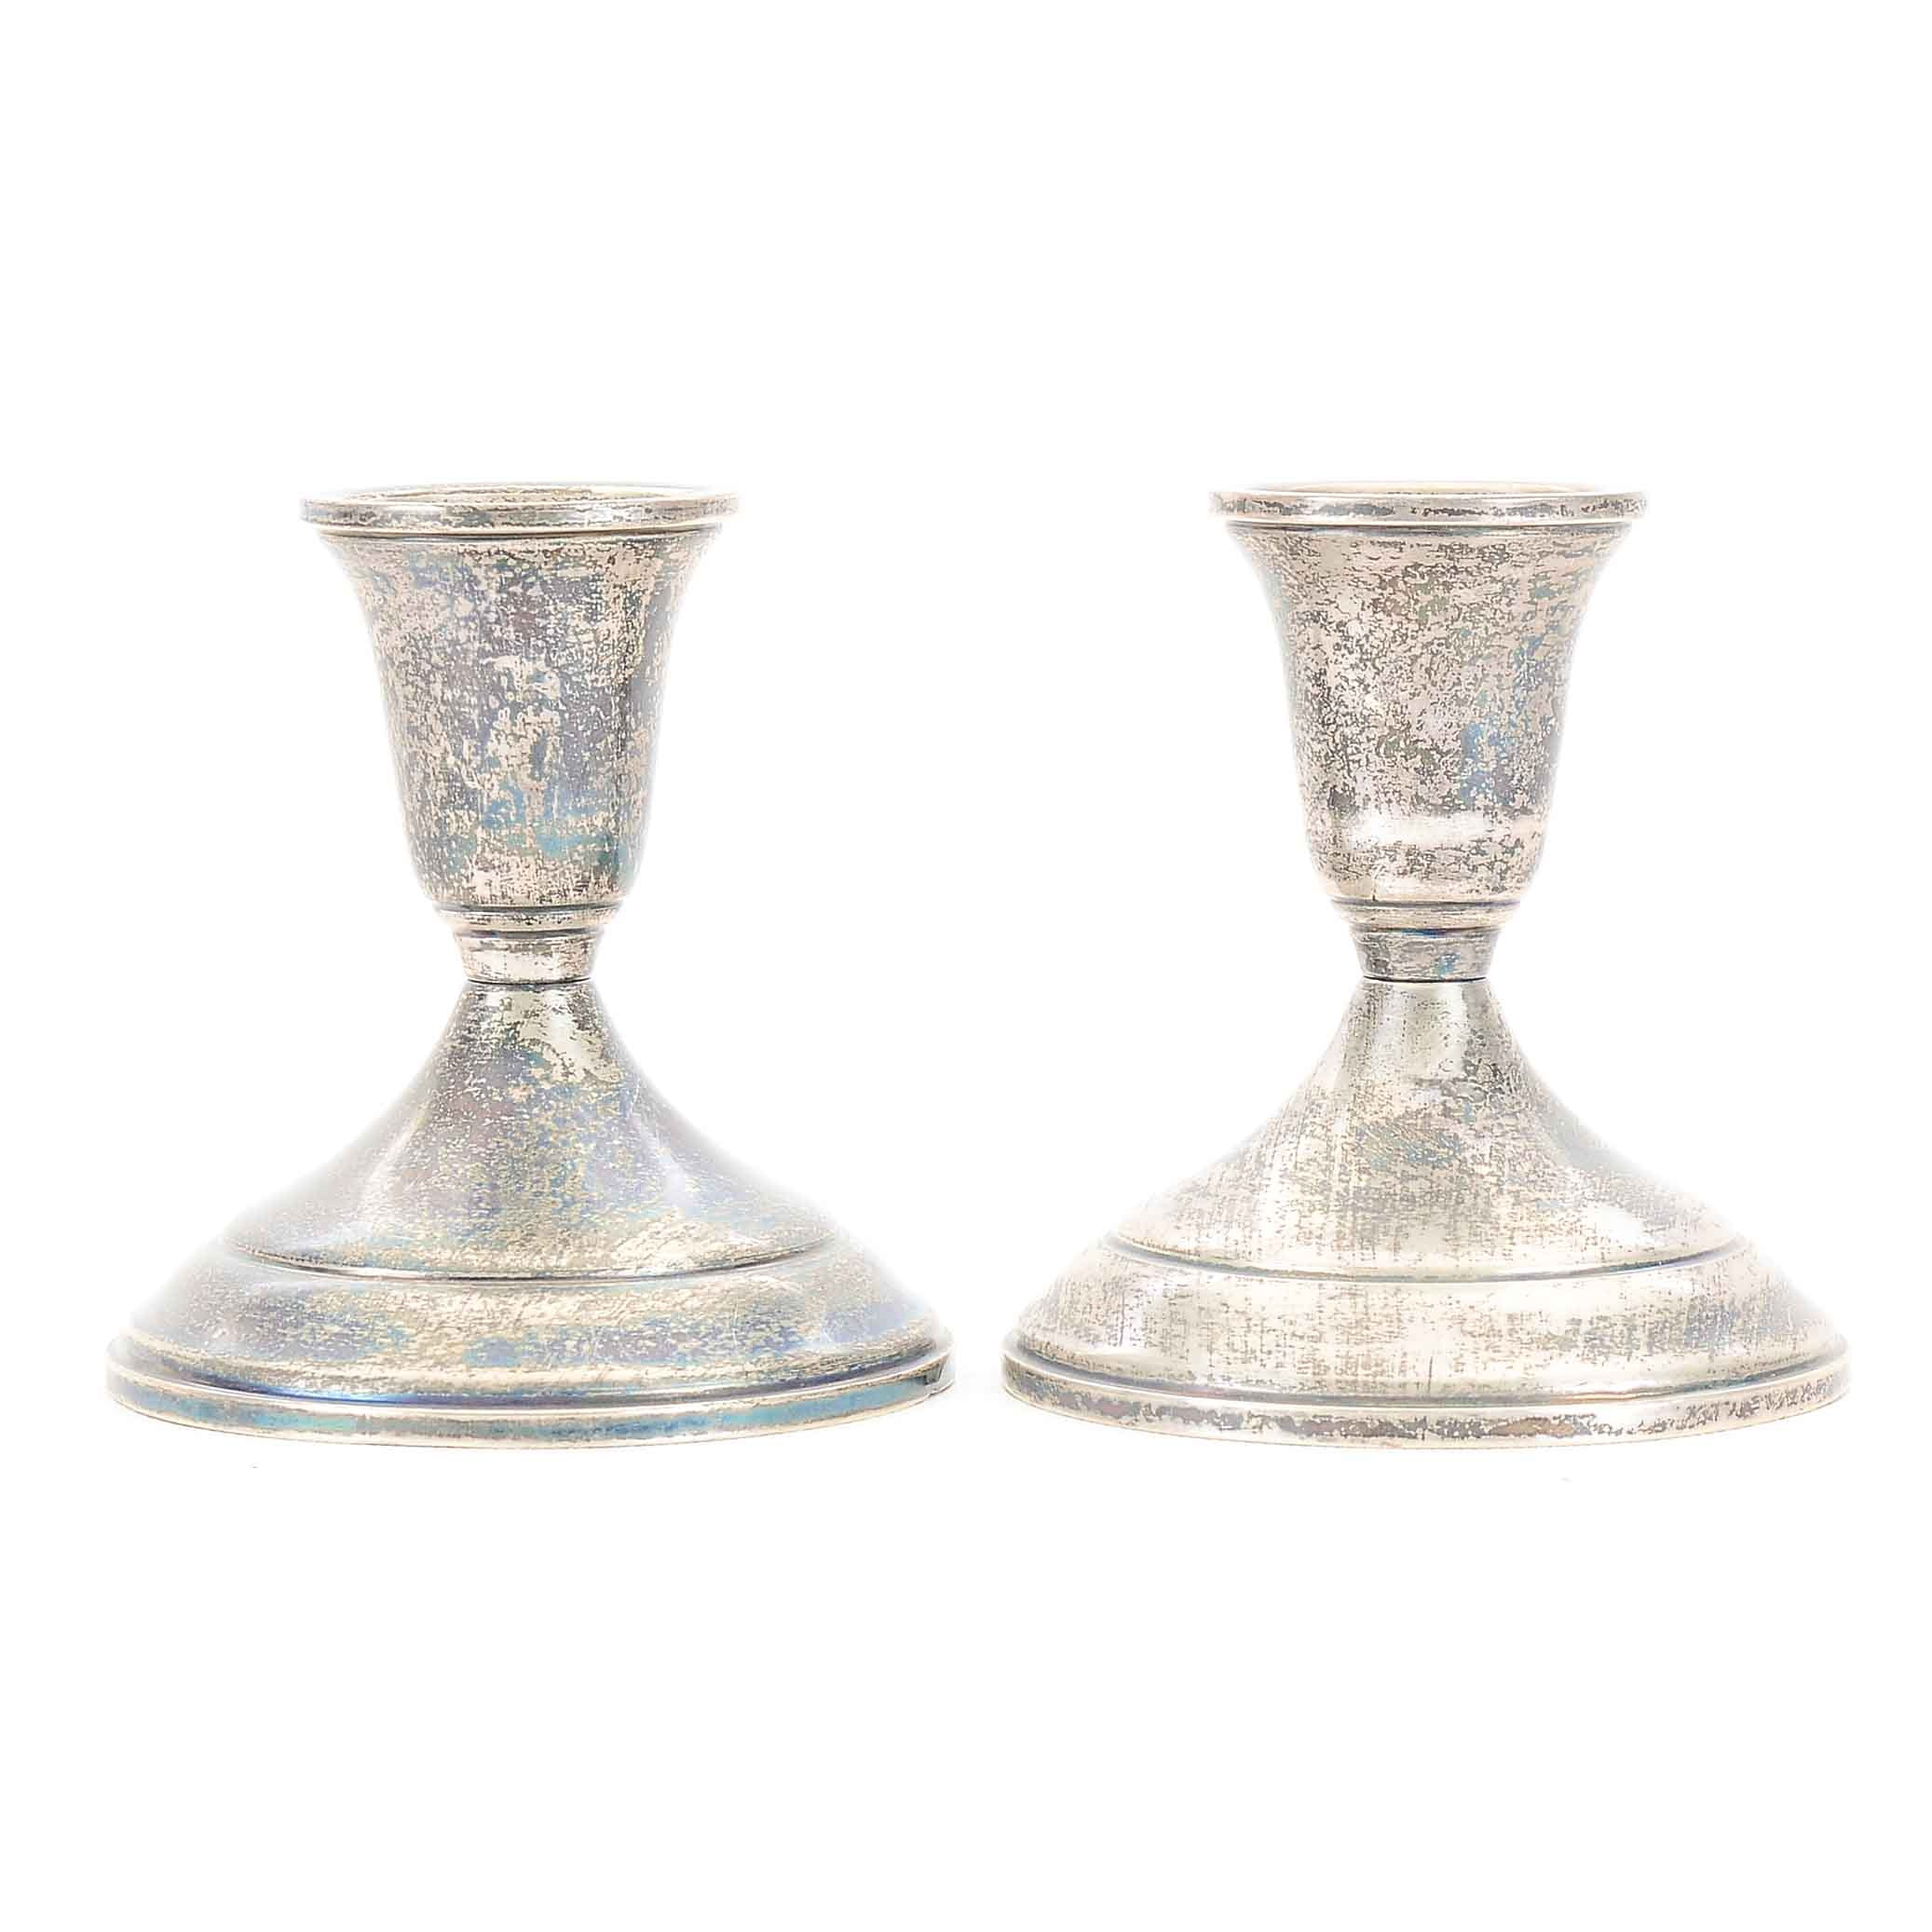 Pair of Towle Sterling Silver Candlesticks